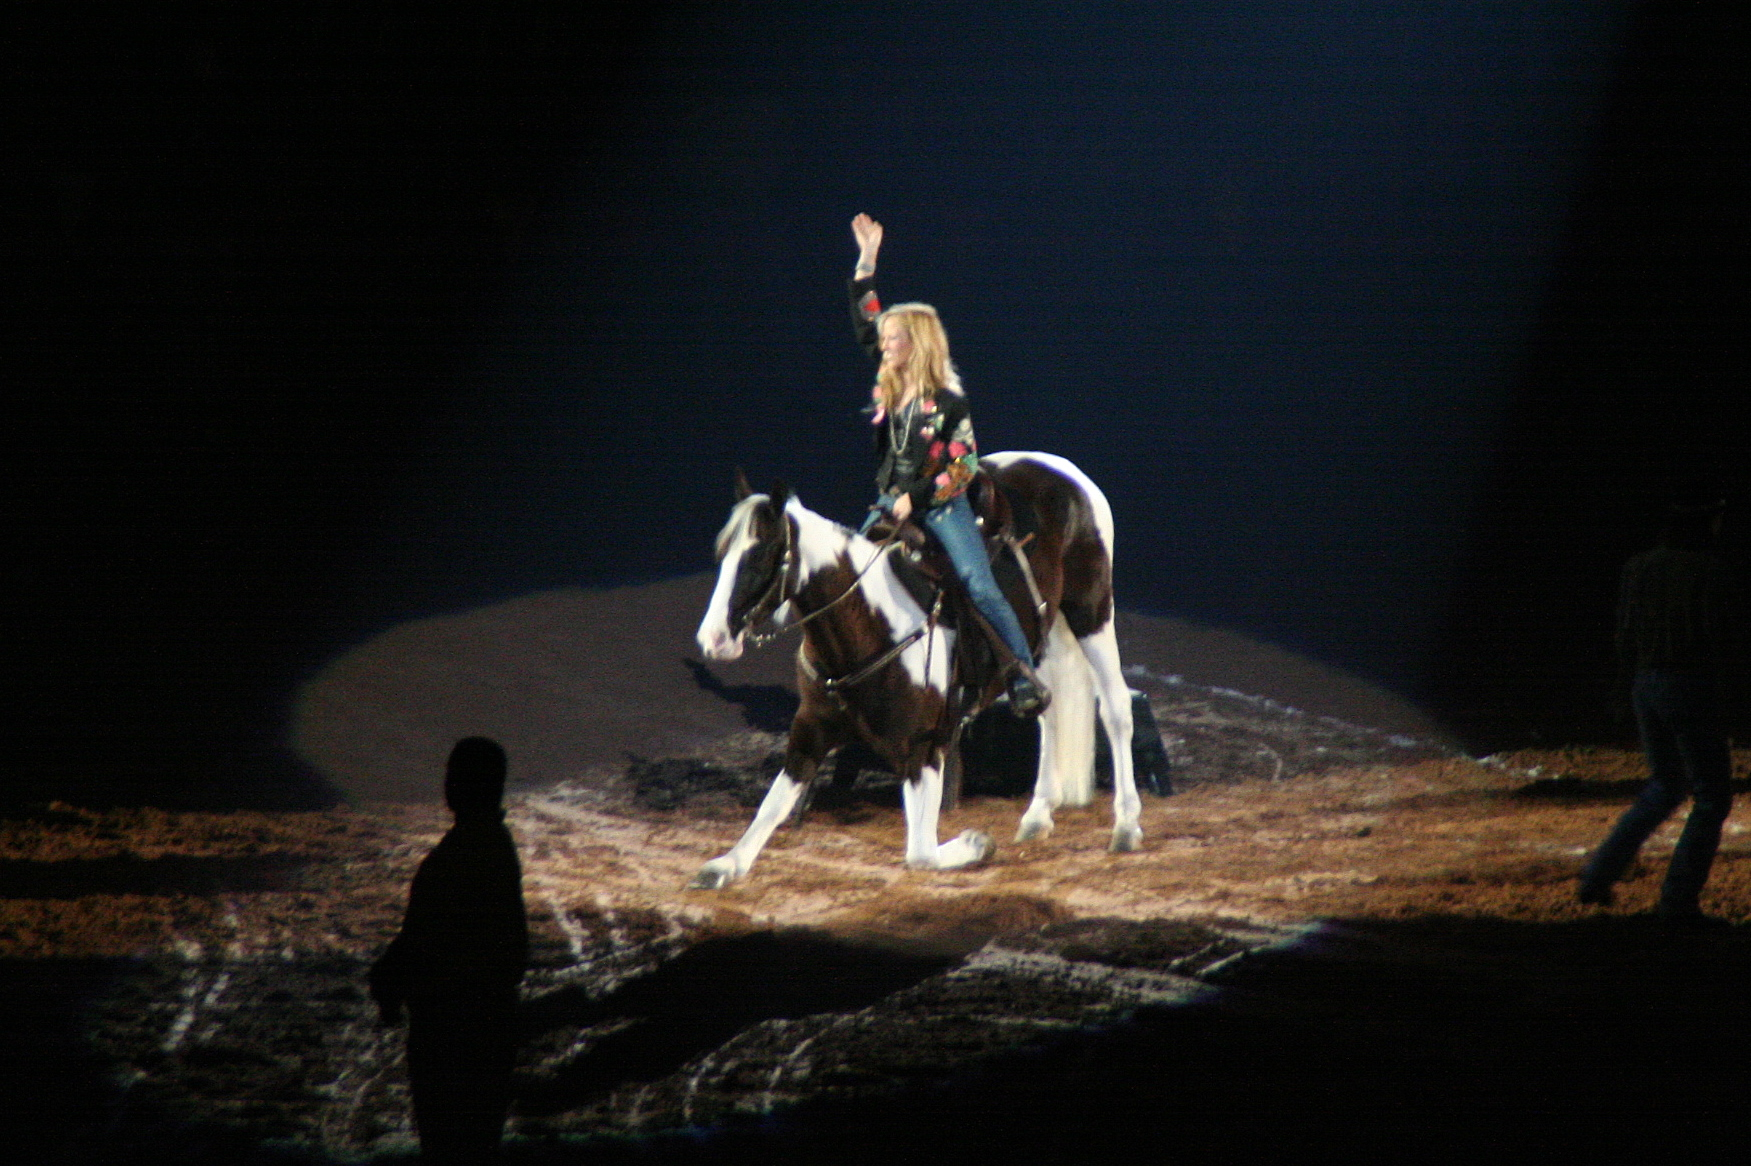 Description Sheryl crow at houston livestock show and rodeo.jpg